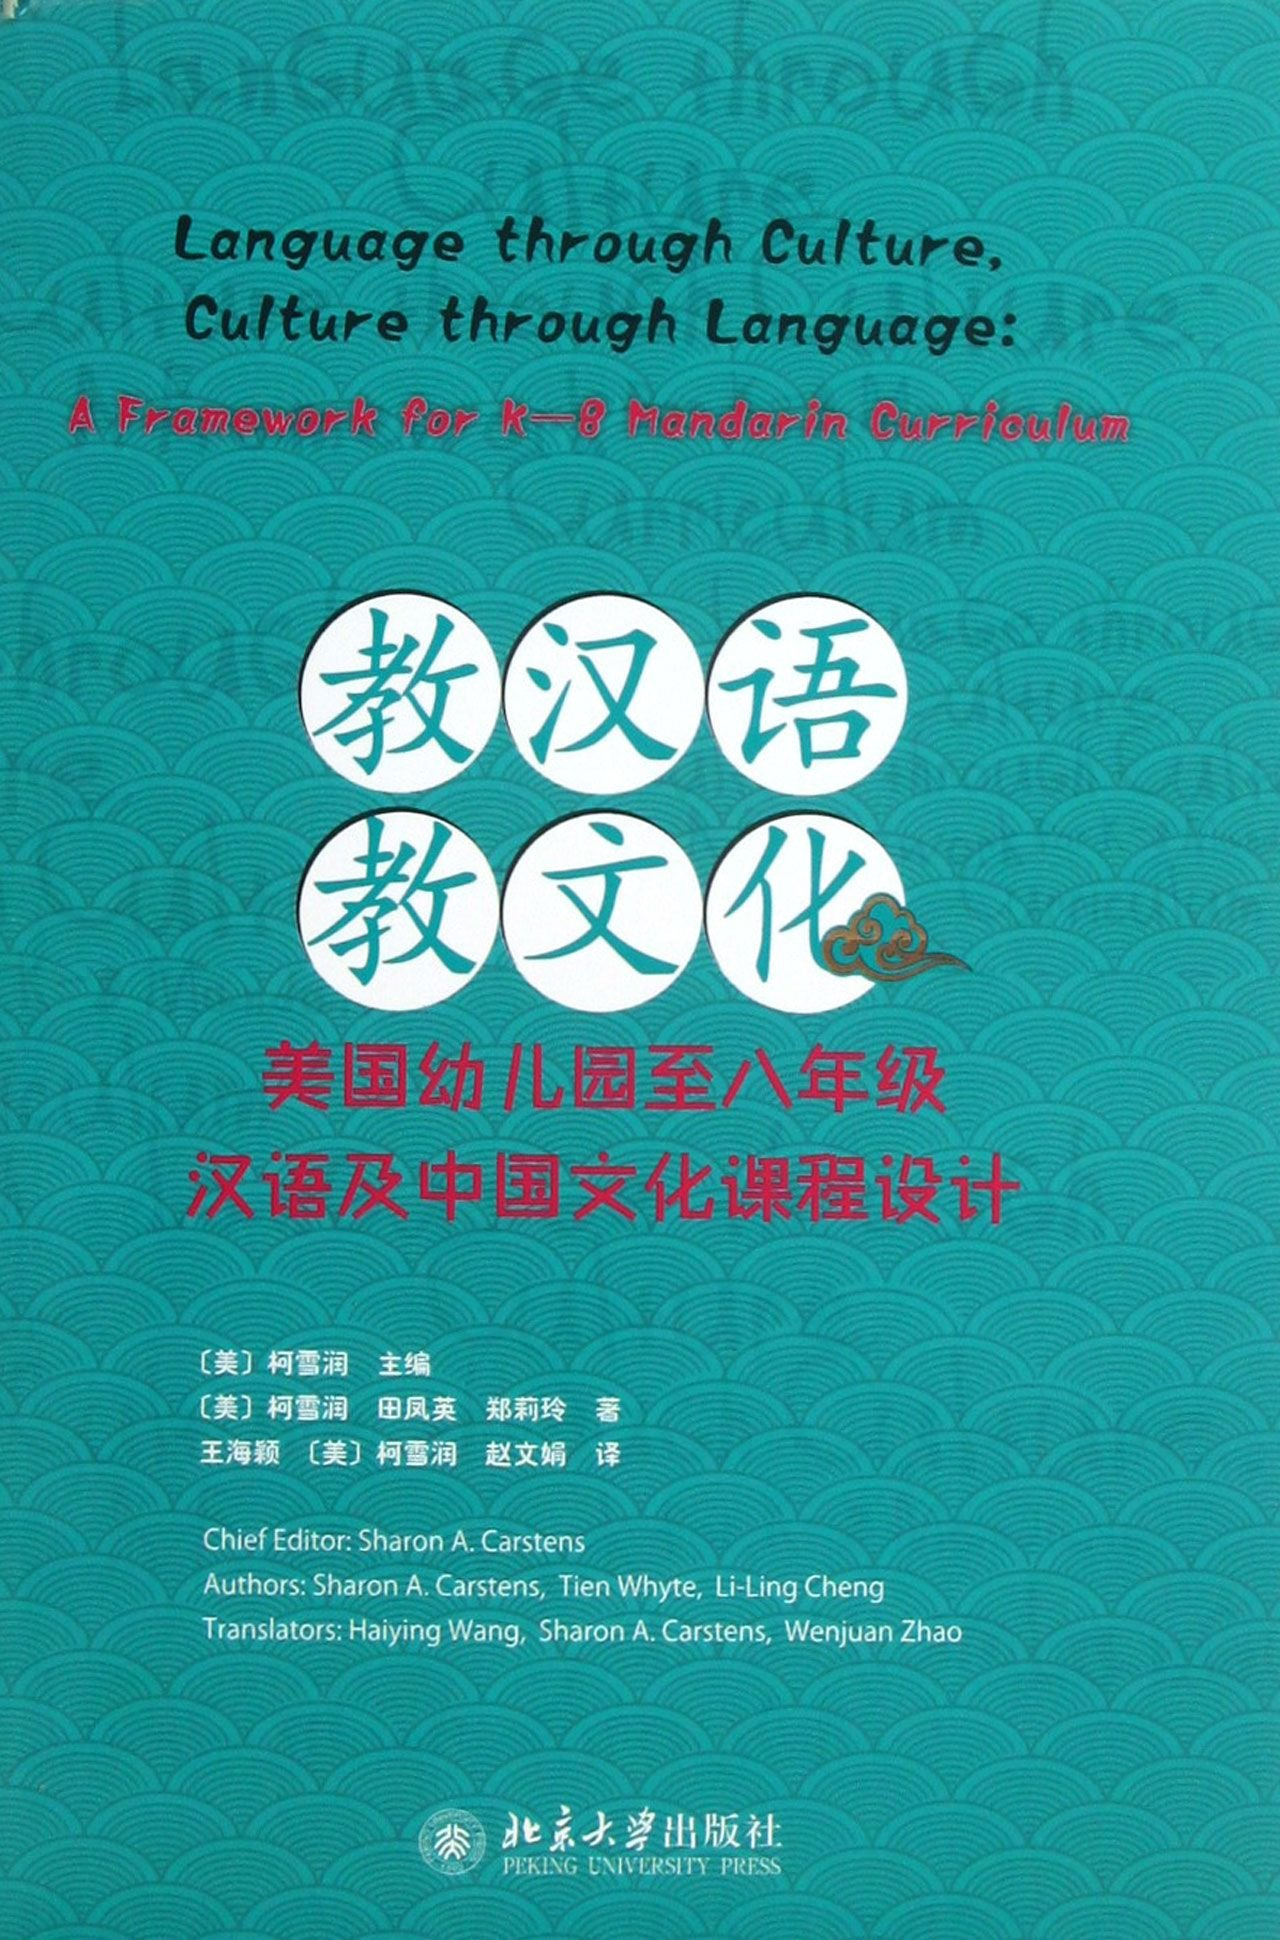 Download Language through Culture; Culture through Language, A Framework for K-8 Mandarin Curriculum (Chinese and English Edition) ebook